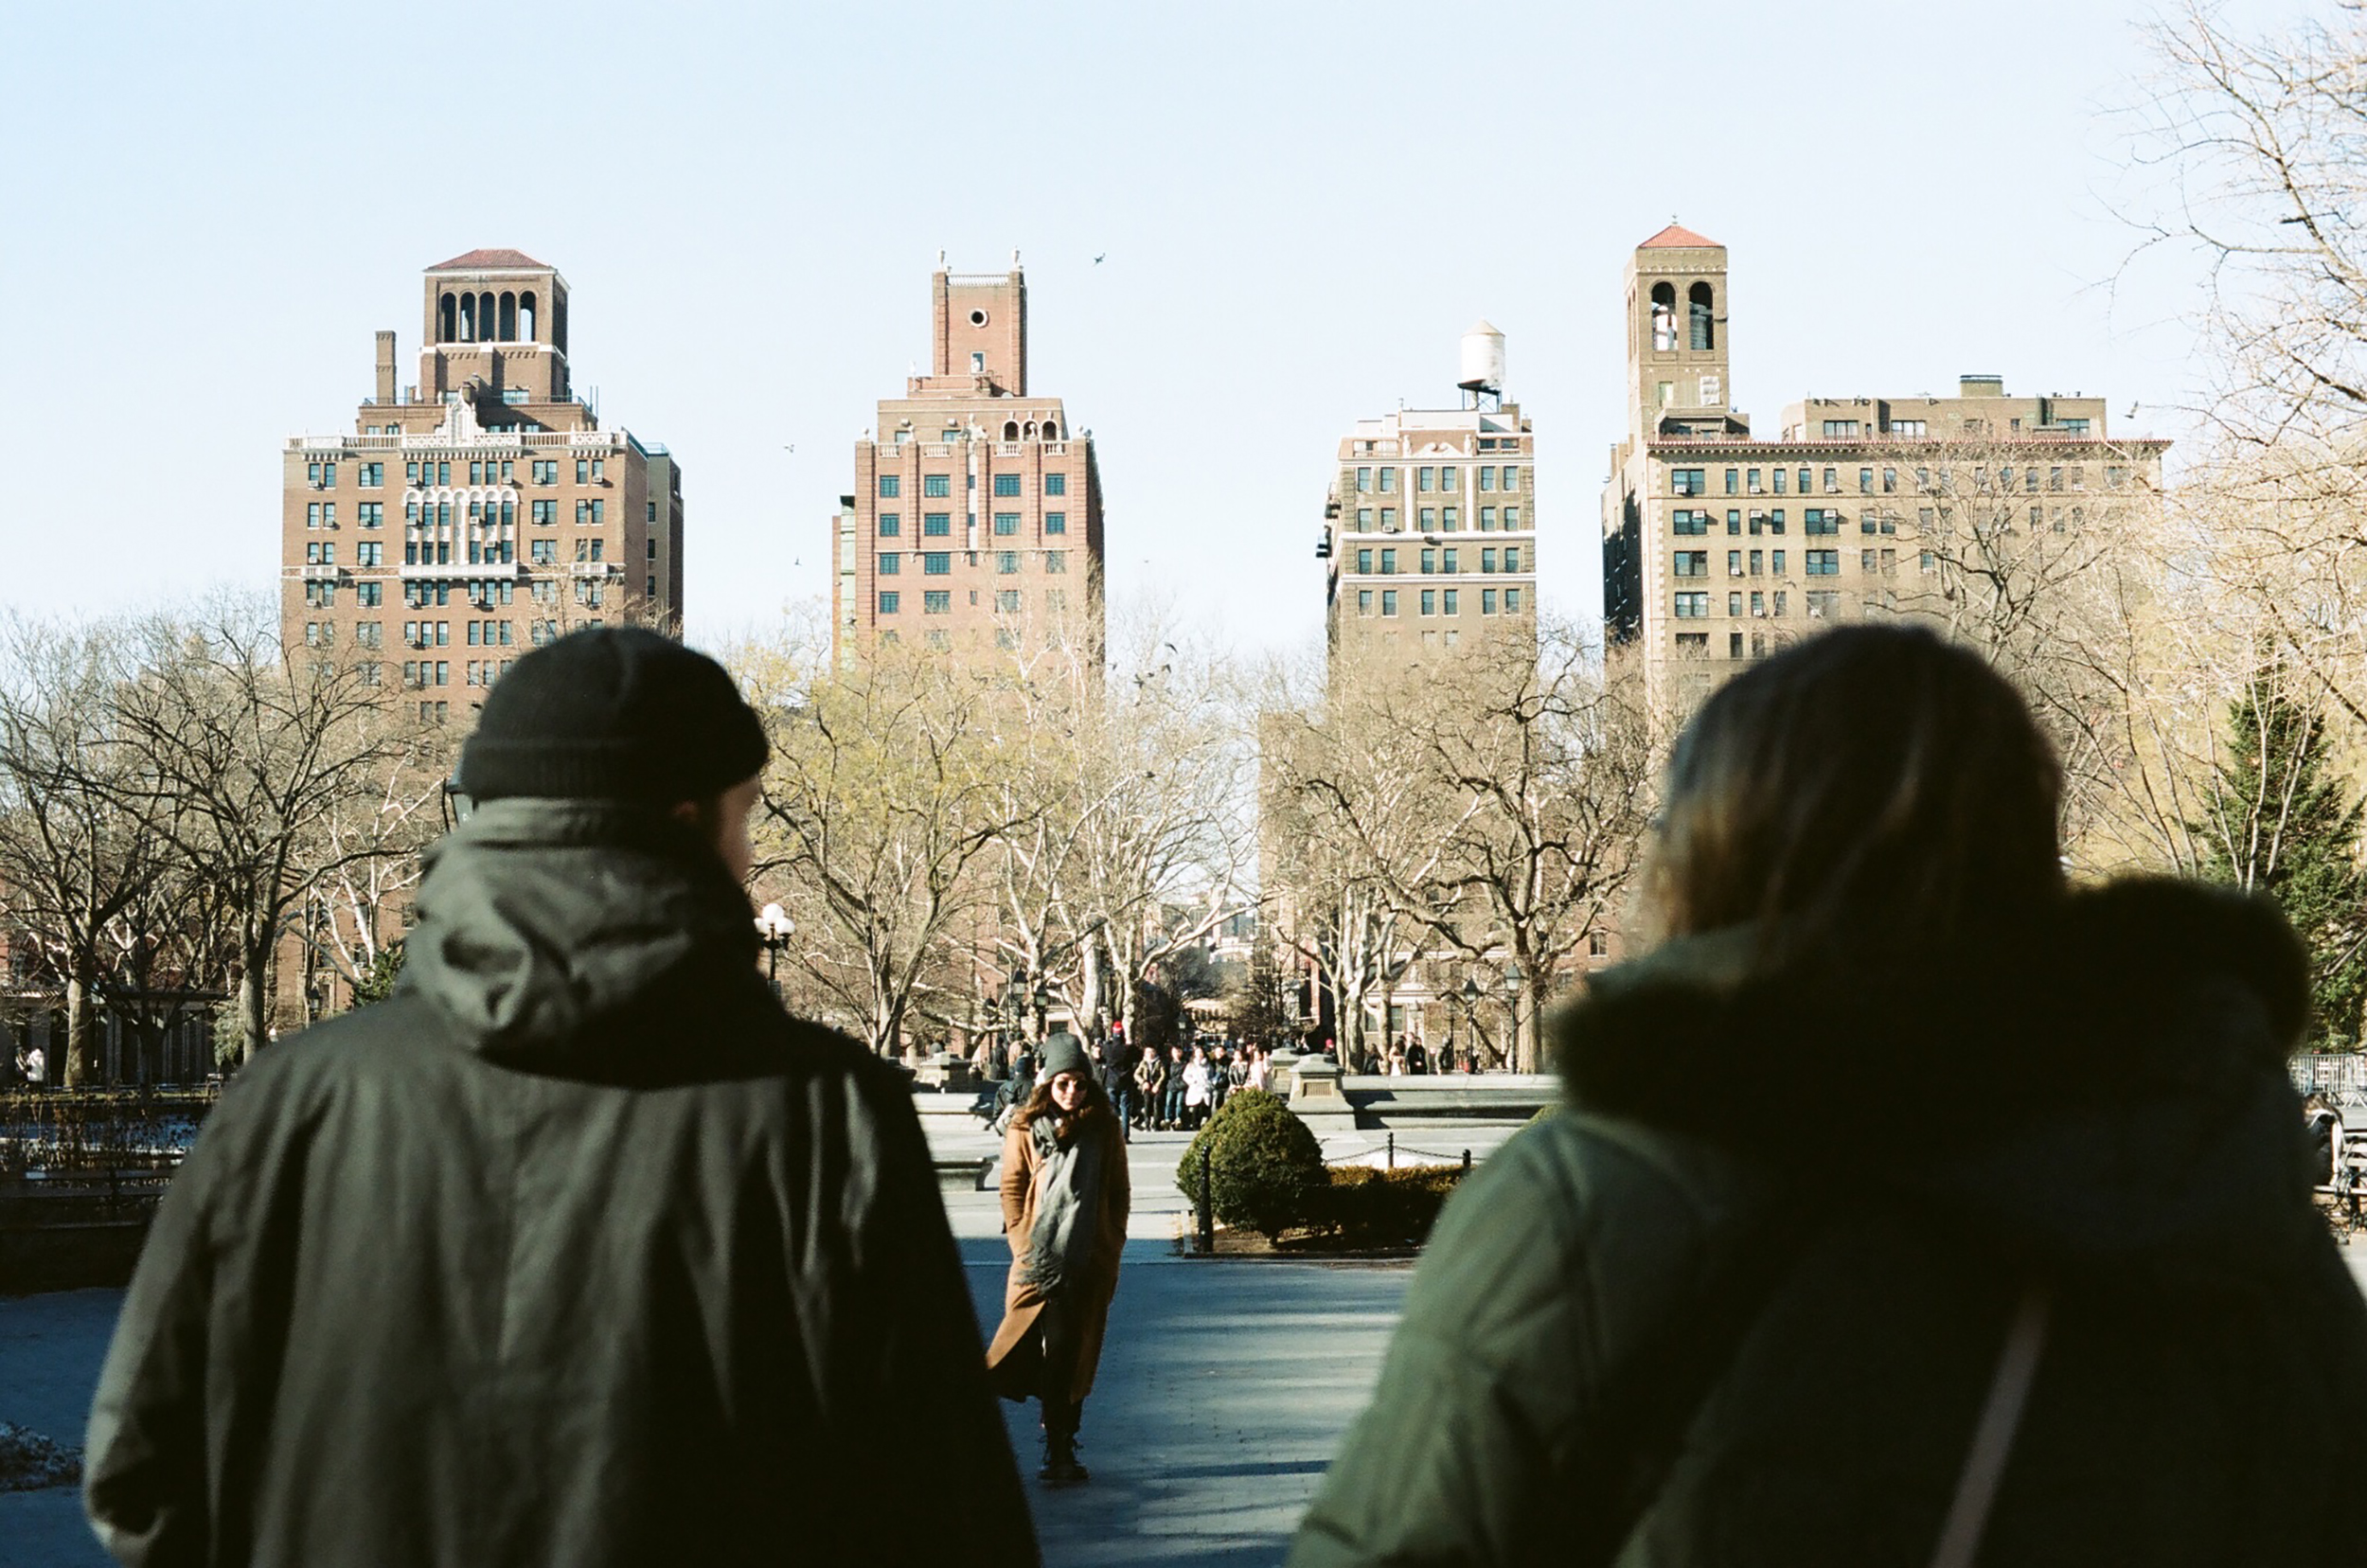 winter_nyc_15.jpg